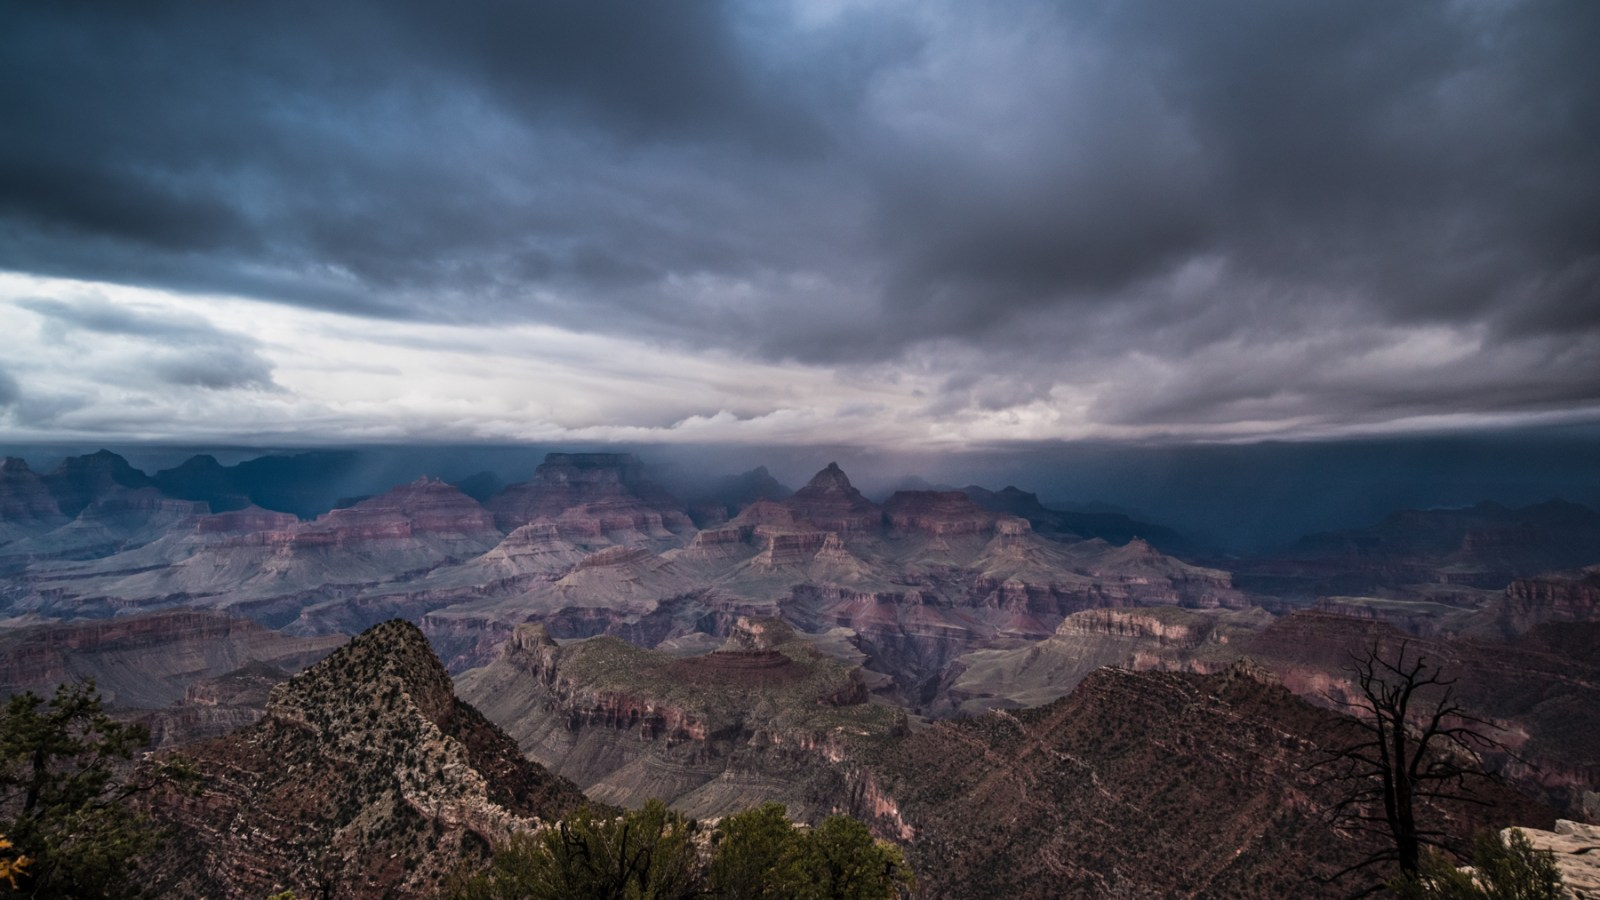 a image by sabbalot photography of a winter storm approaching the grand canyon.